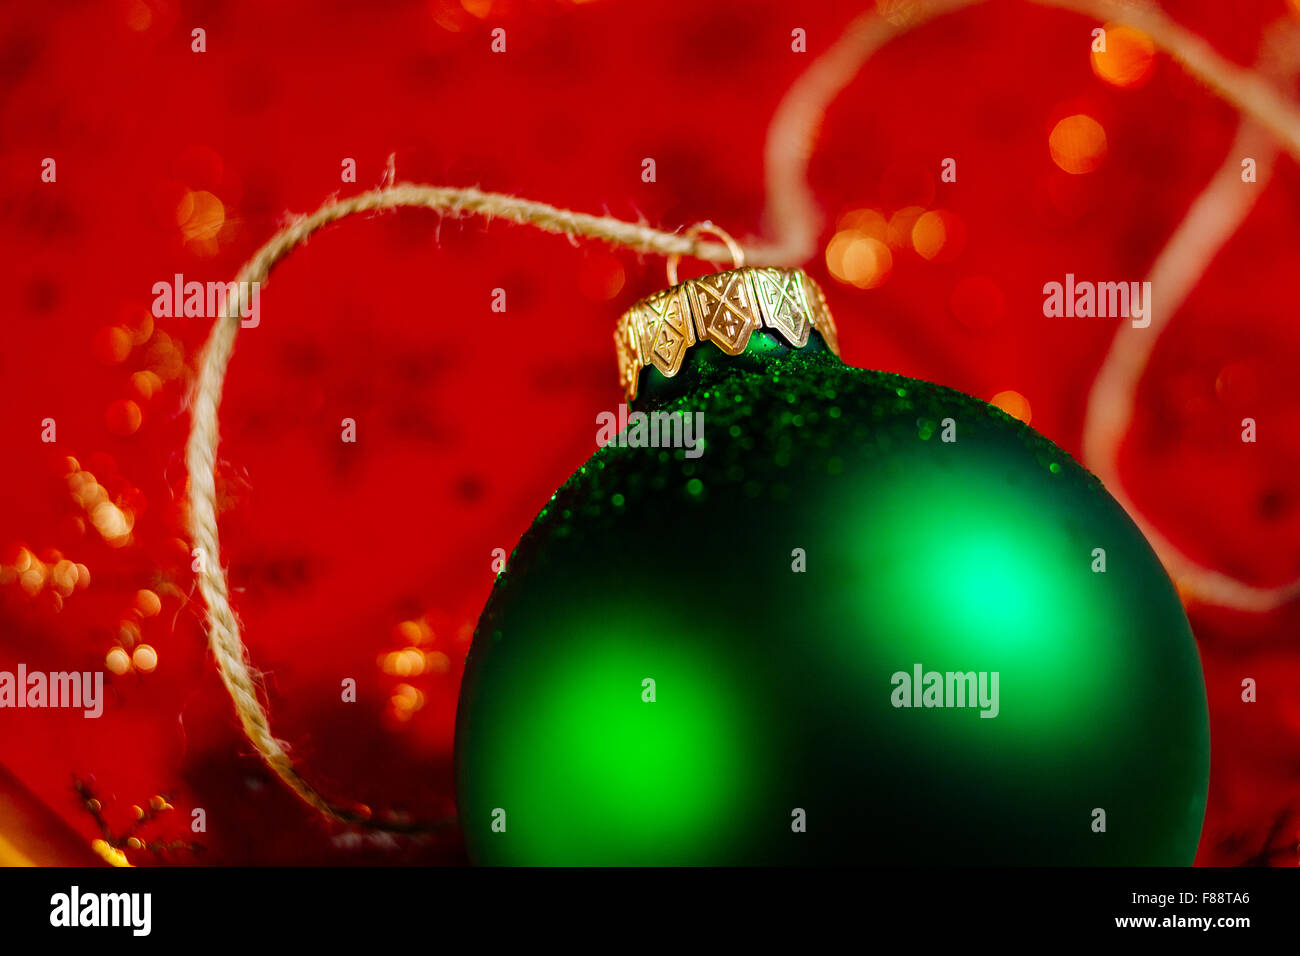 new year green ball on red holiday background close up - Stock Image